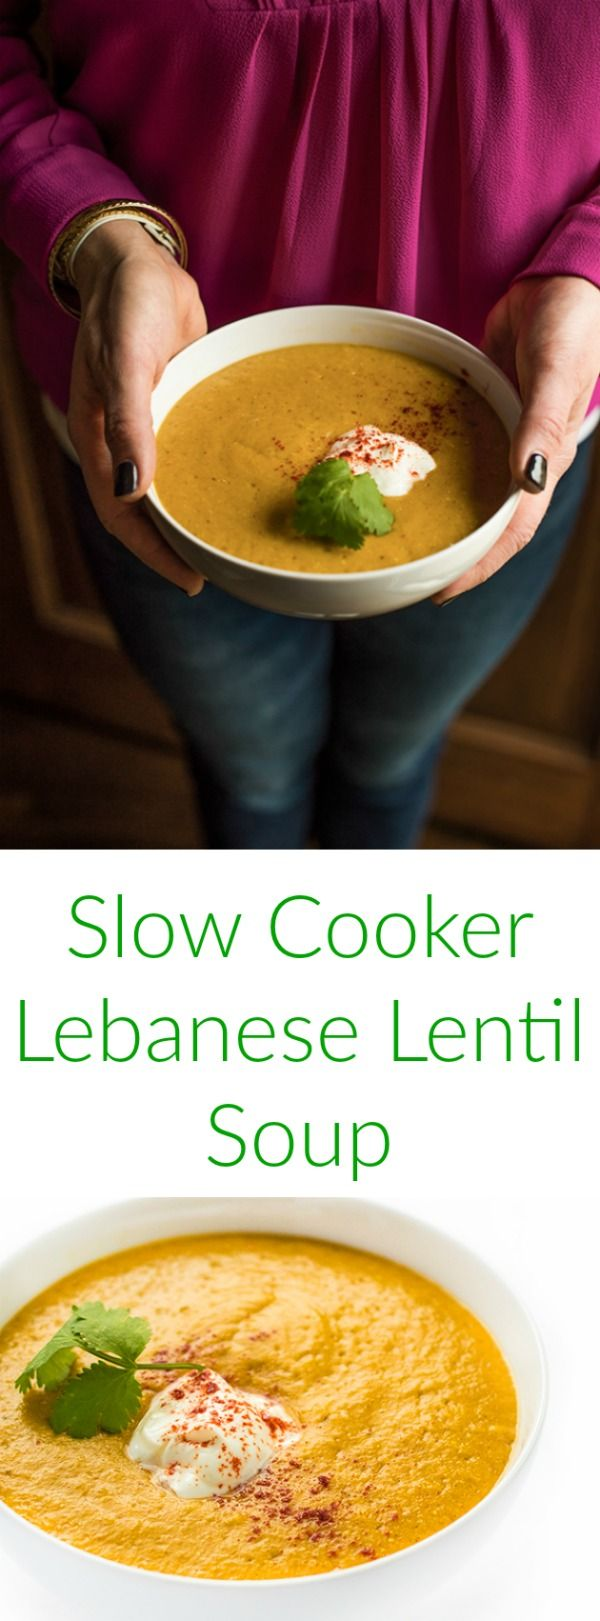 This authentic vegetarian Lebanese soup recipe made with red lentils and vegetables is seasoned with cumin and turmeric. Between the smoky flavor and fabulous texture, everyone will love this!